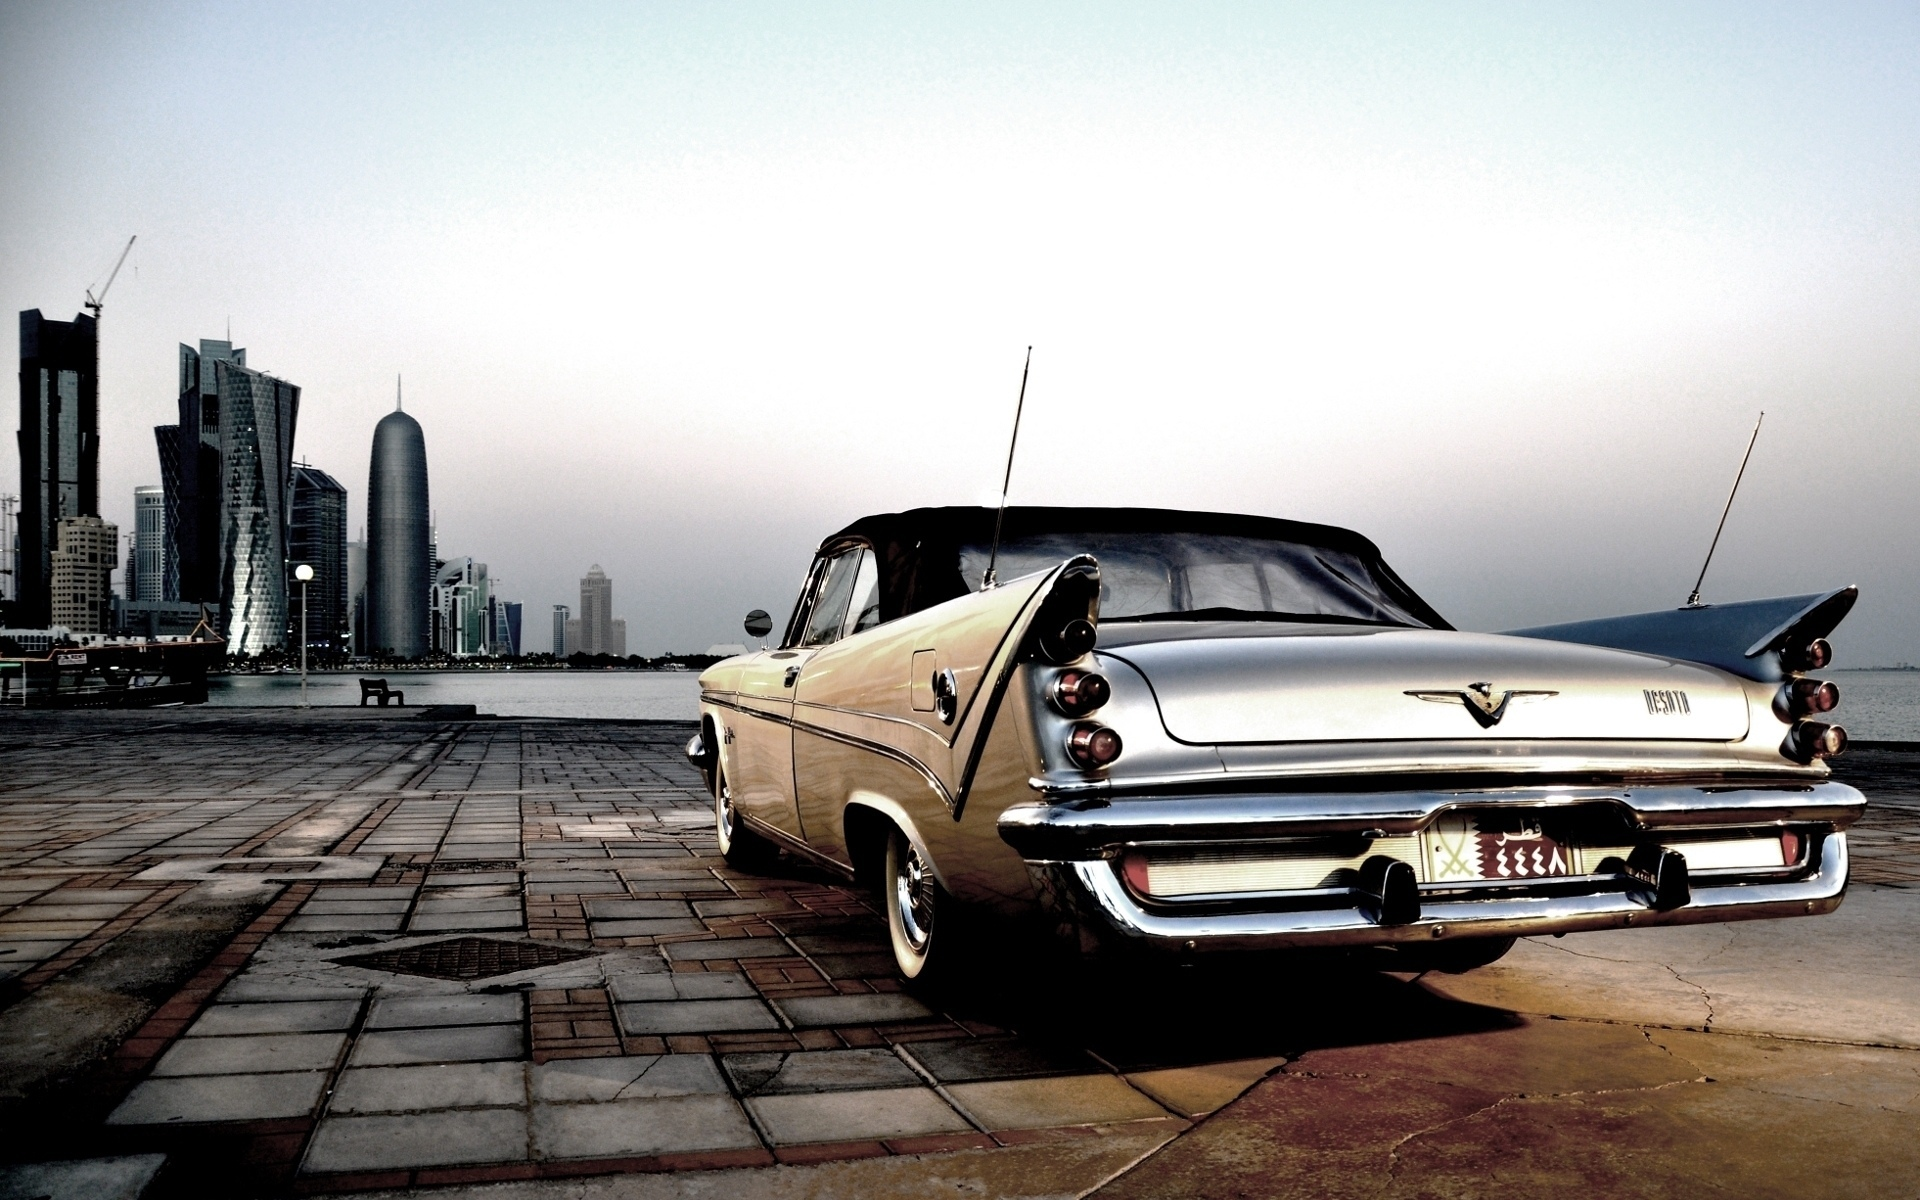 Car Wallpapers | Freewallpapers.to